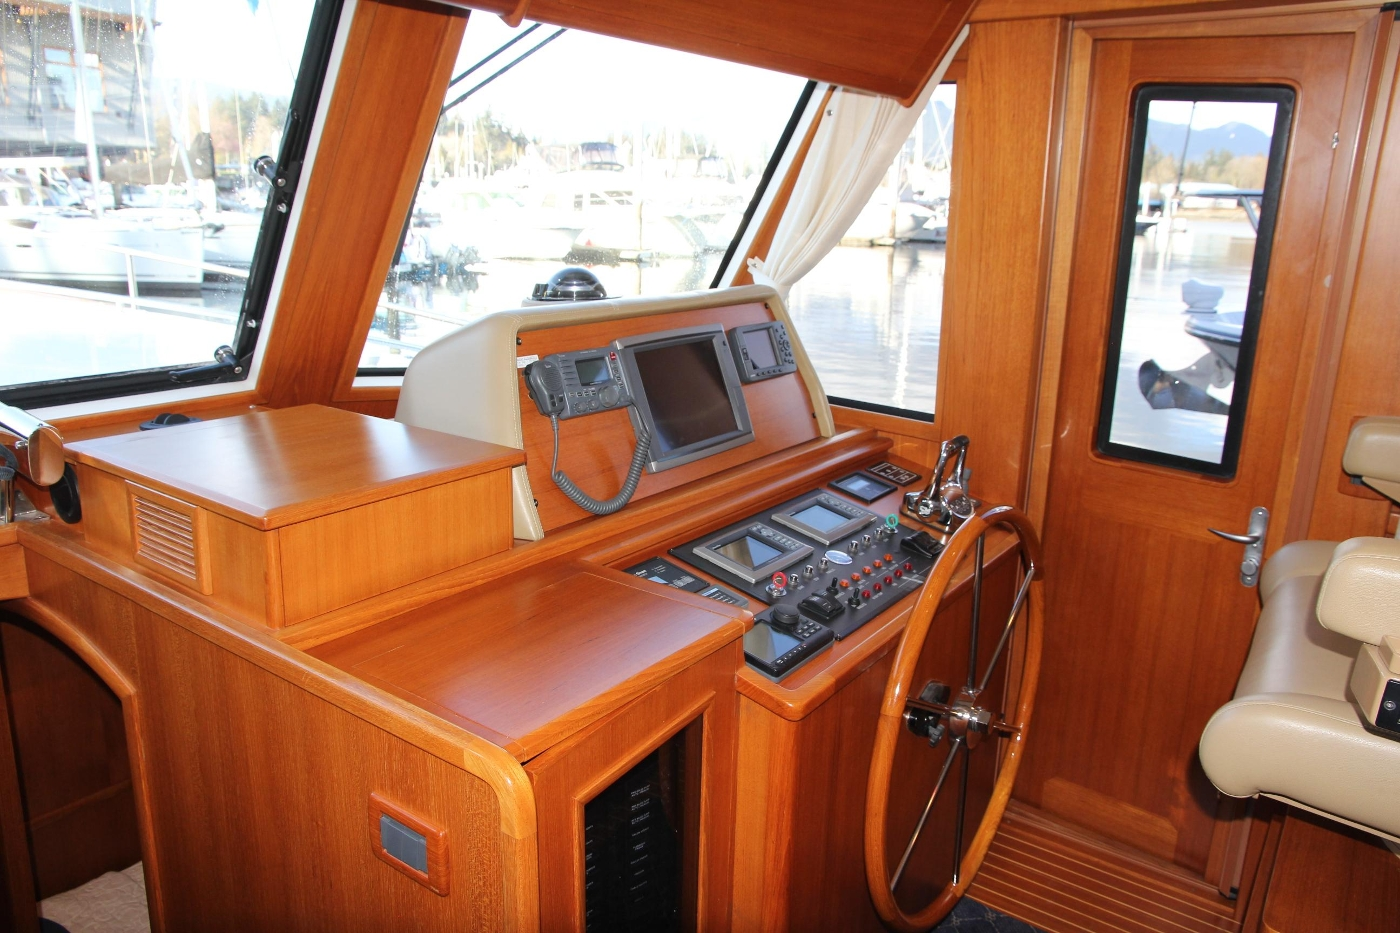 2009 Grand Banks 47 Europa, Helm from Galley